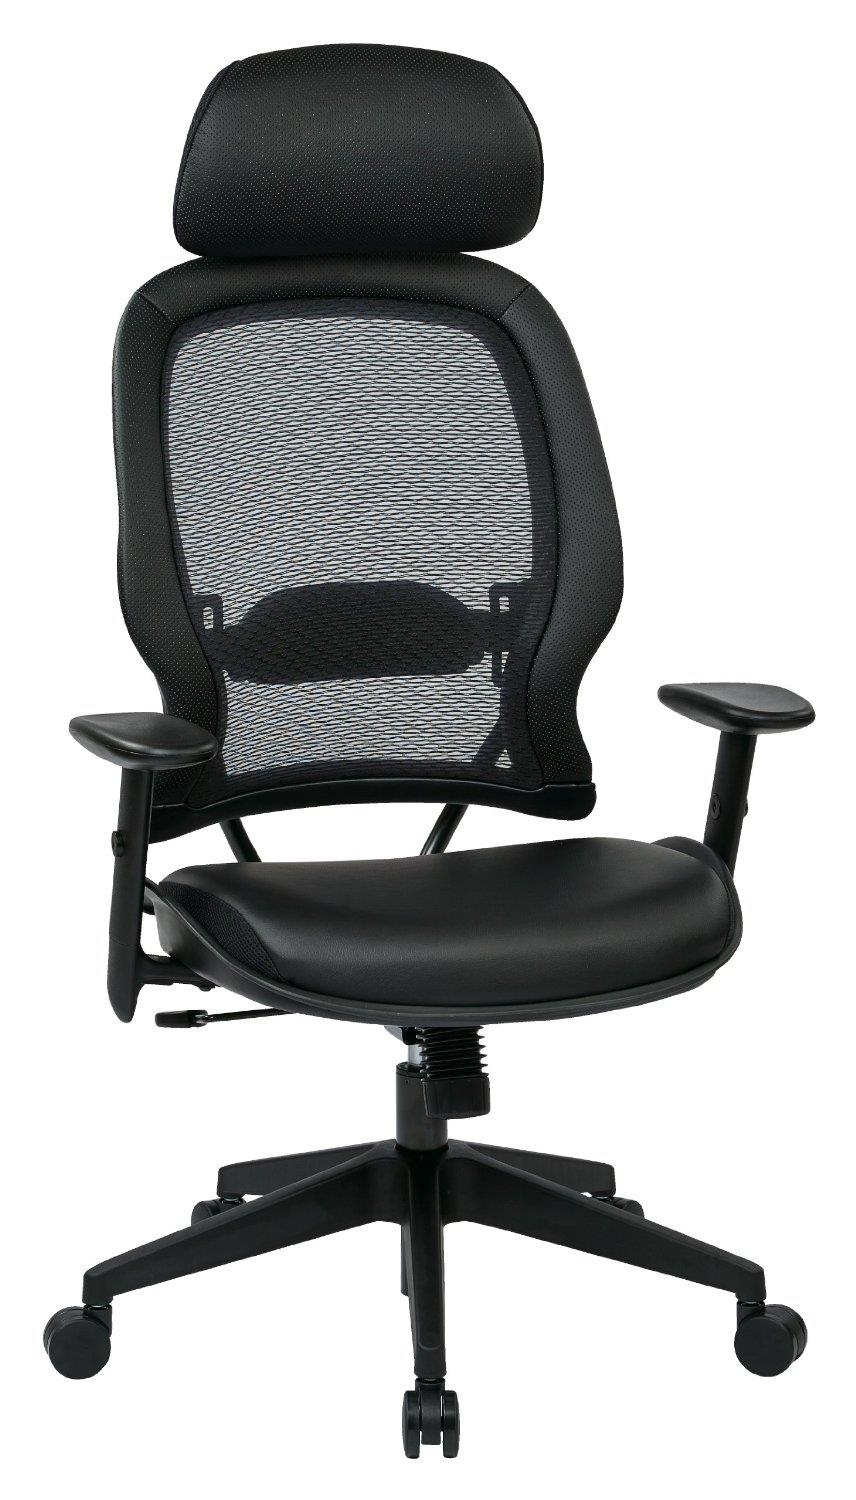 office star leather air grid chair with adjustable lumbar support by oj commerce. Black Bedroom Furniture Sets. Home Design Ideas